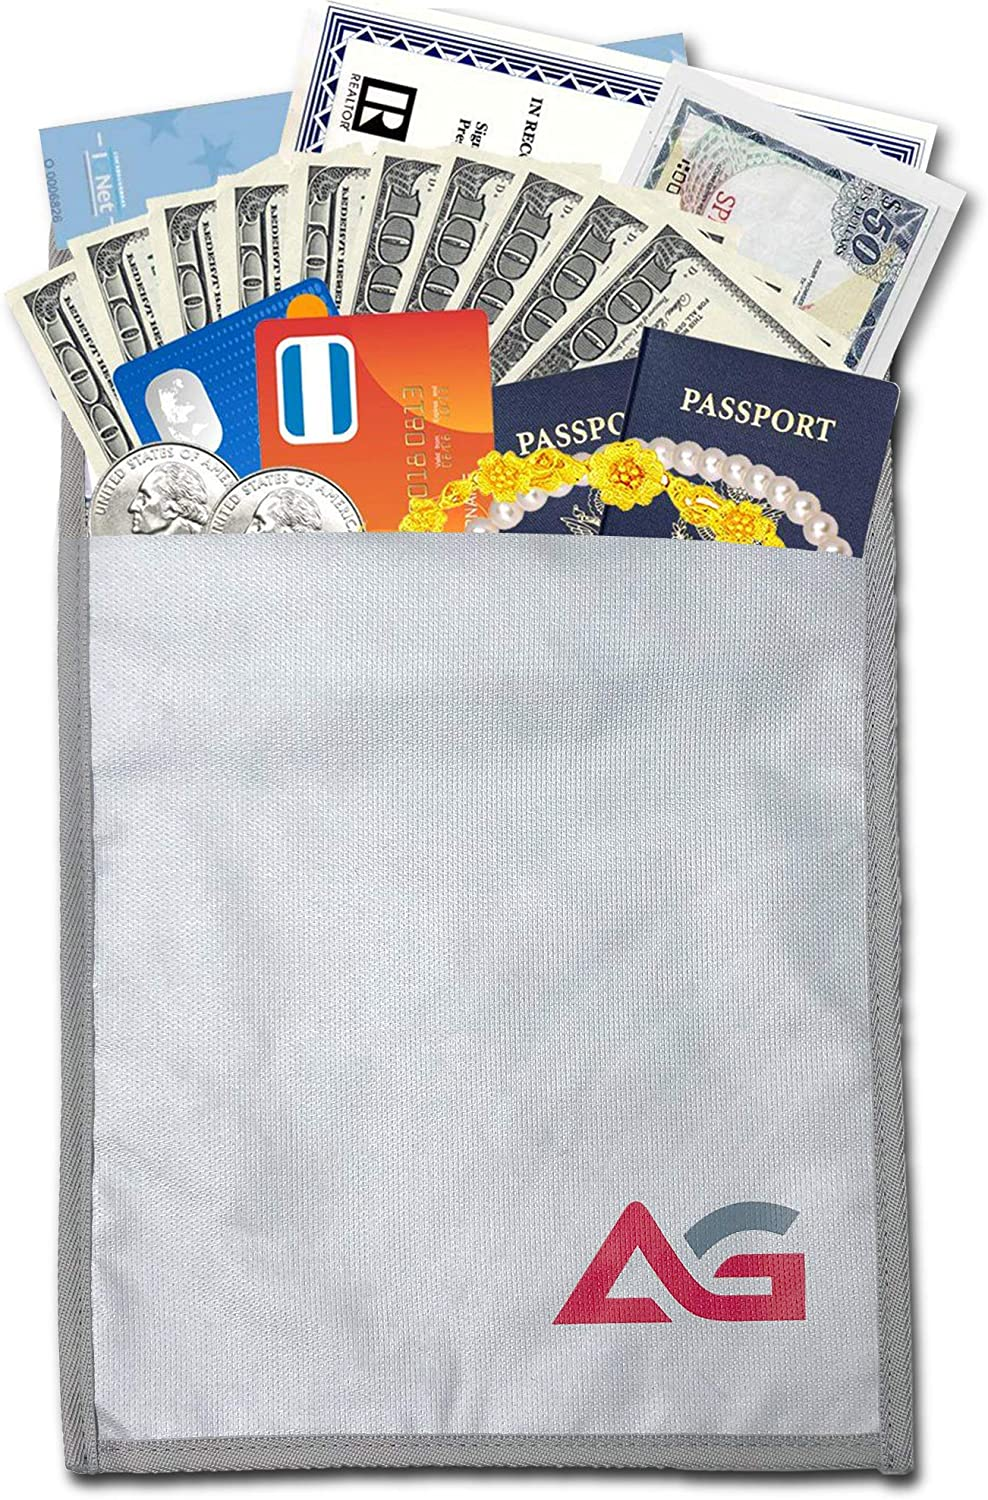 AG Document Bag 15 x 11 Fire and Water Resistant Money Bag Fireproof Safe Storage for Money, Documents, Jewelry and Passport